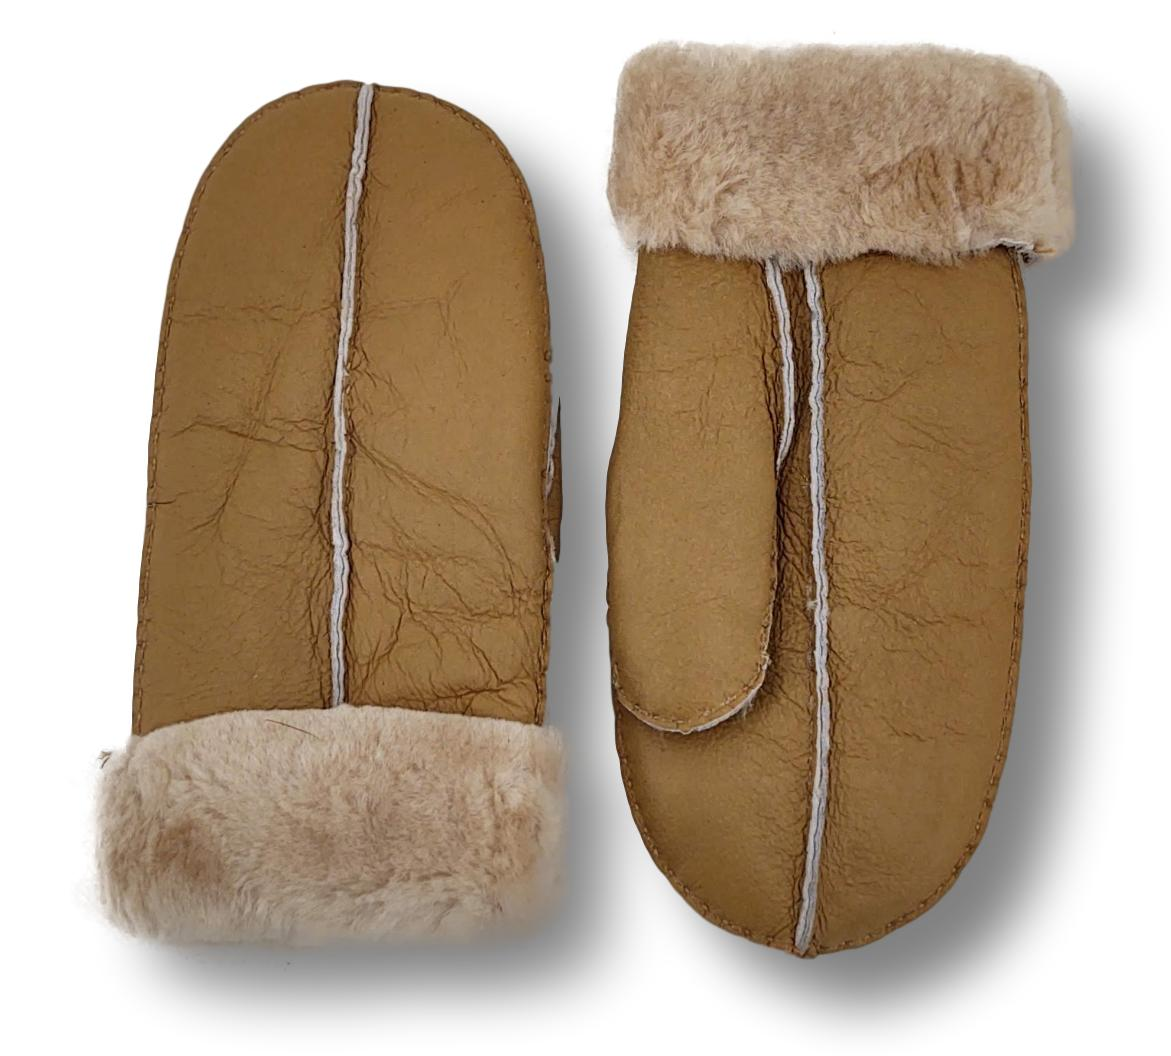 ZXM-159 - Suede Lamb / Ruskindsluffe - Accesories - Light Brown | STAMPE PELS